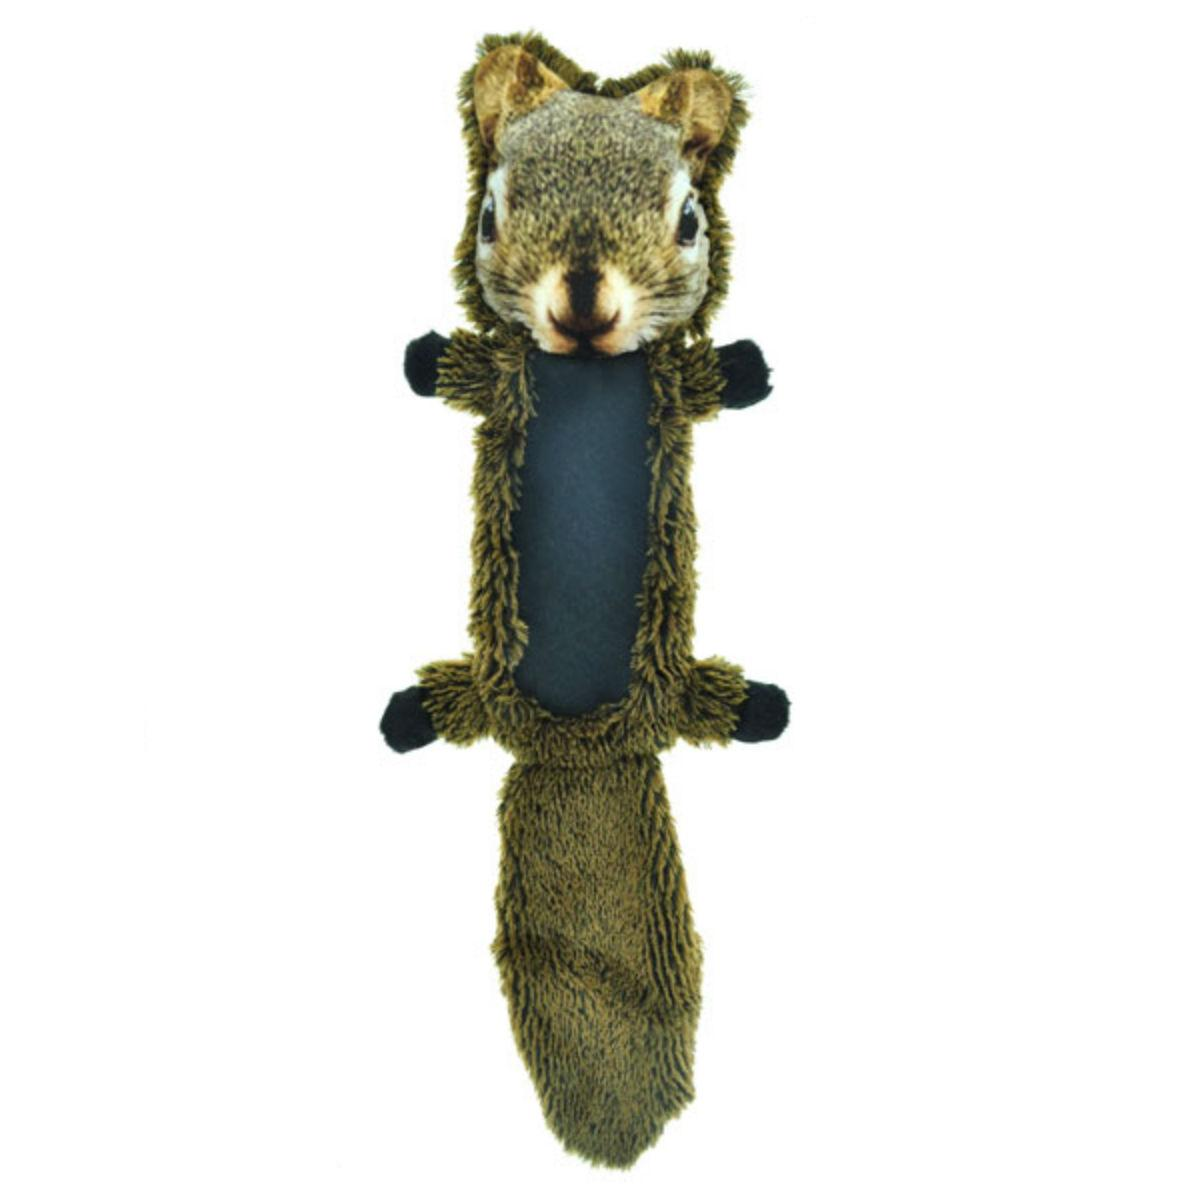 FurRealz Flatties Dog Toy - Squirrel